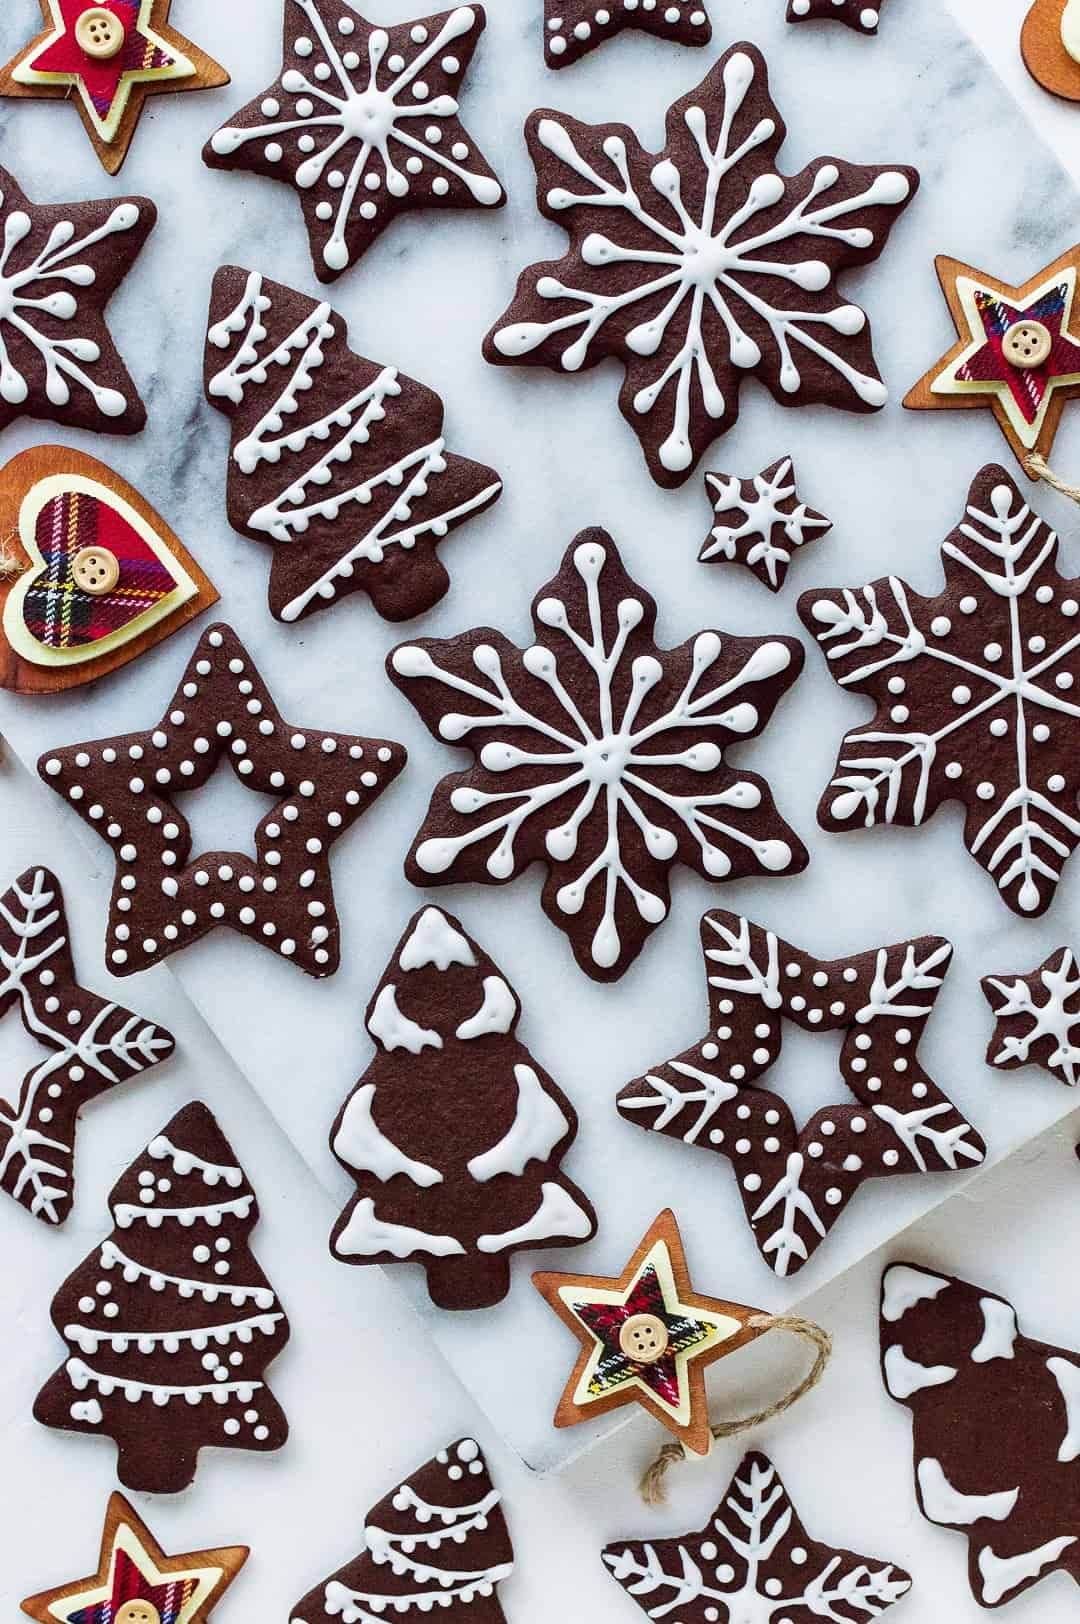 Top down photo of chocolate gingerbread cut-out cookies decorated with white royal icing.